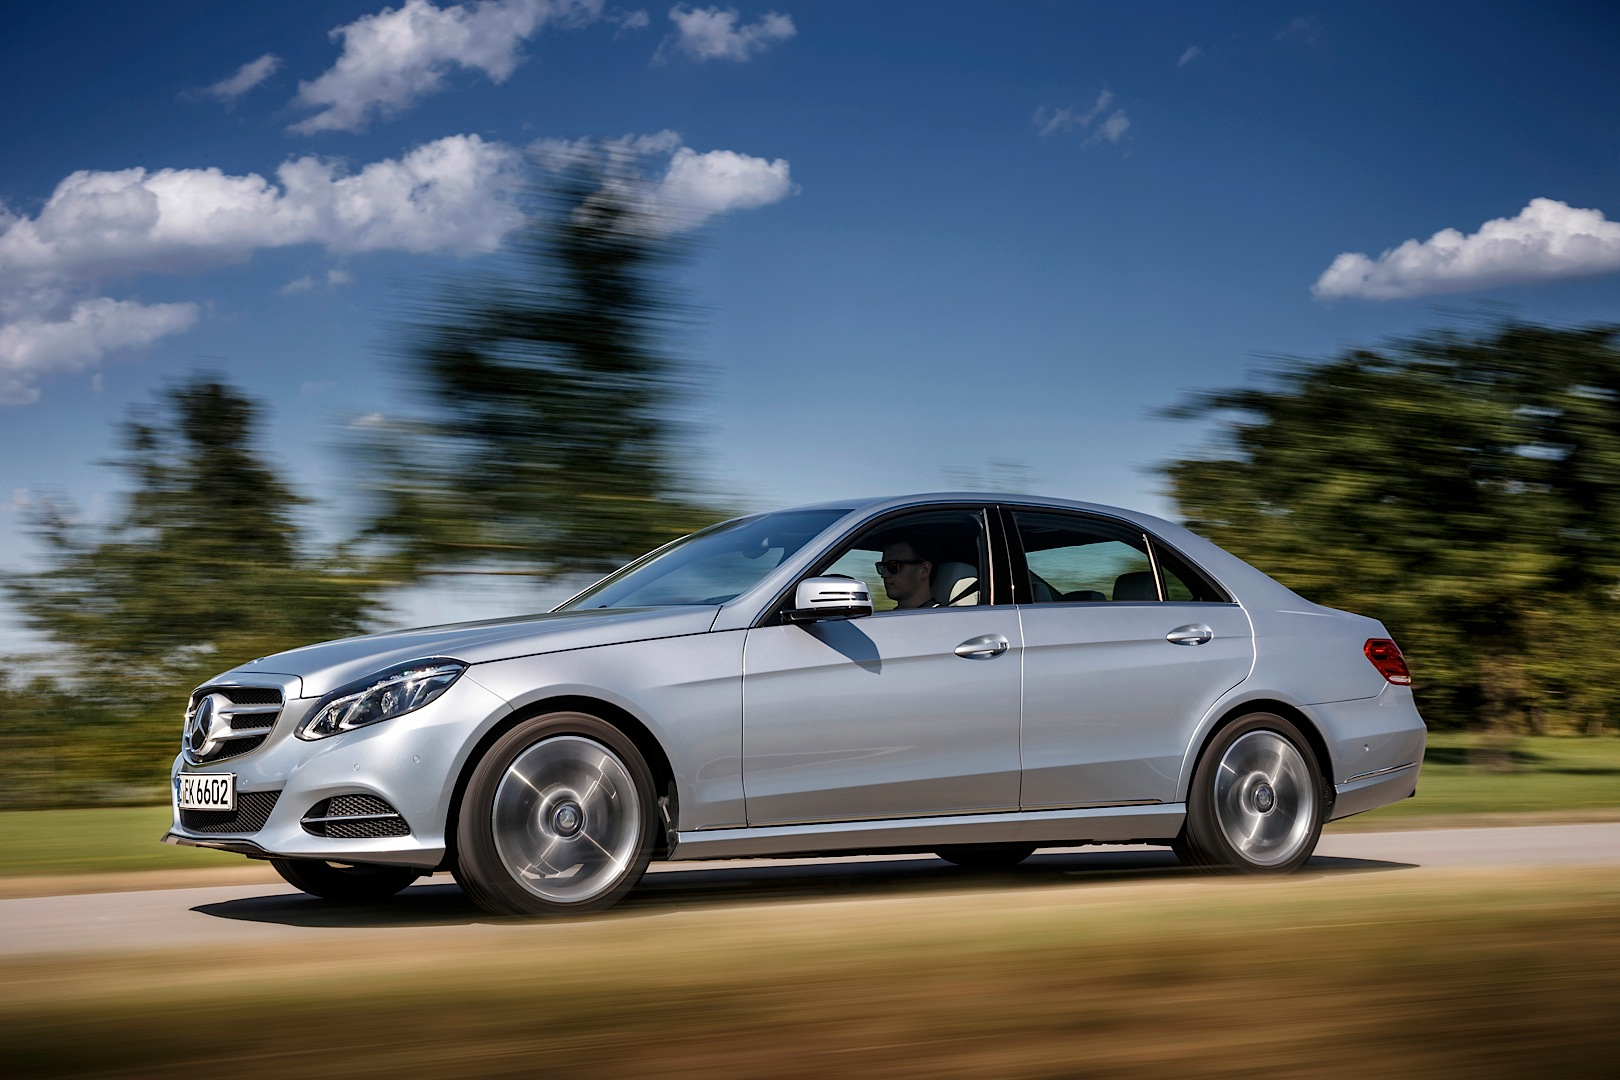 mercedes benz builds the most reliable cars according to